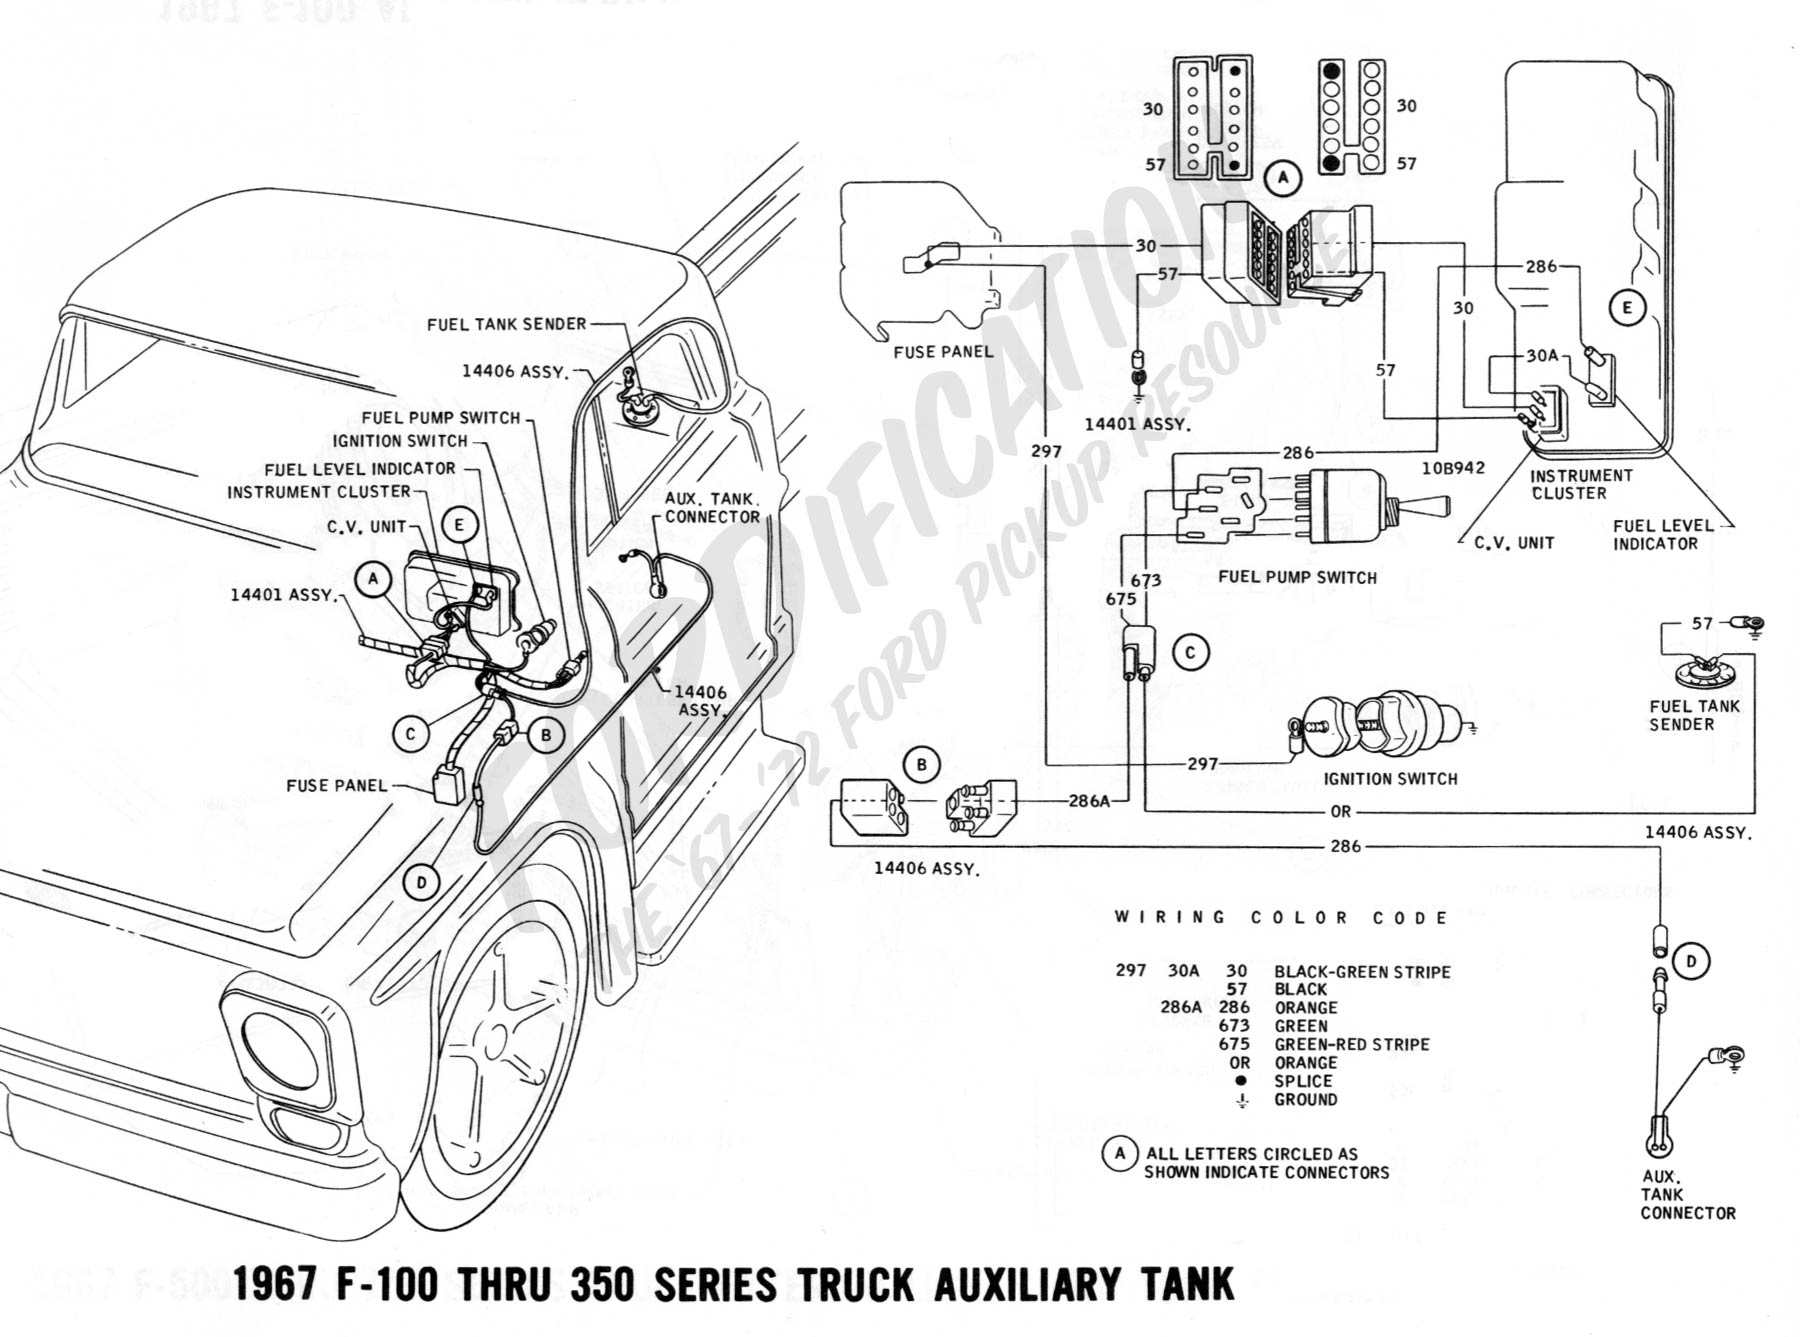 hight resolution of 1967 f 100 thru f 350 auxiliary fuel tank